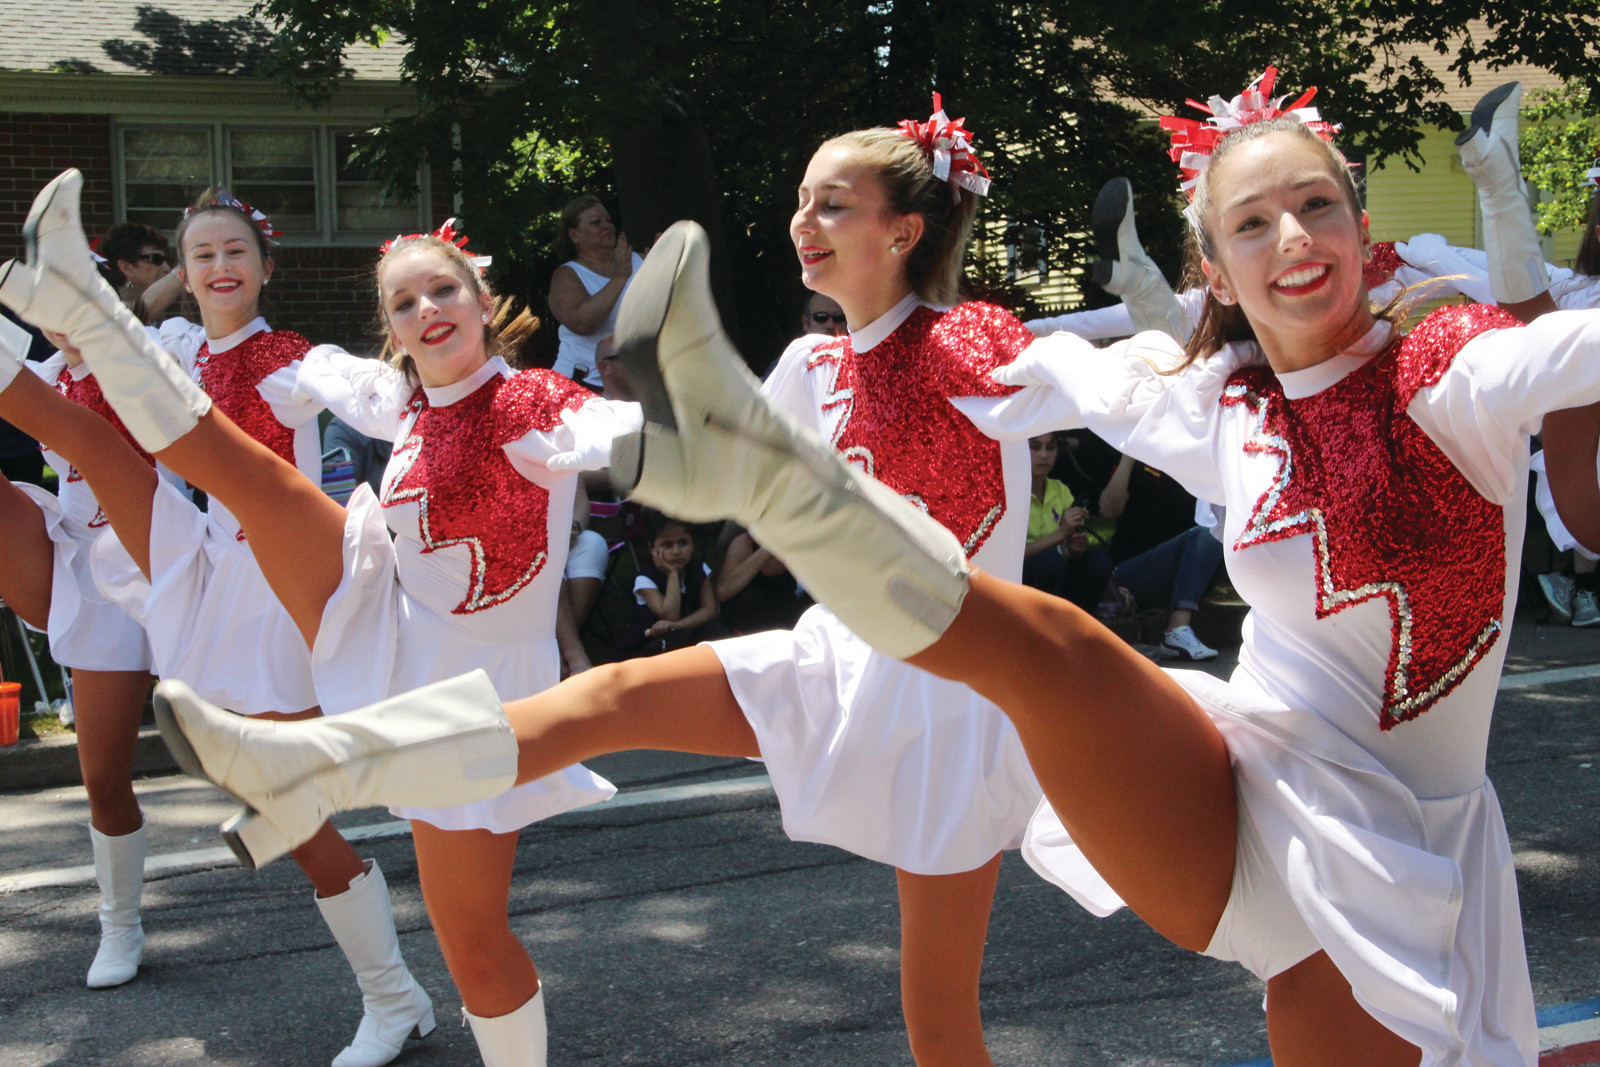 HIGH STEPPING: The Cranston West Falconettes put on a high stepping show.